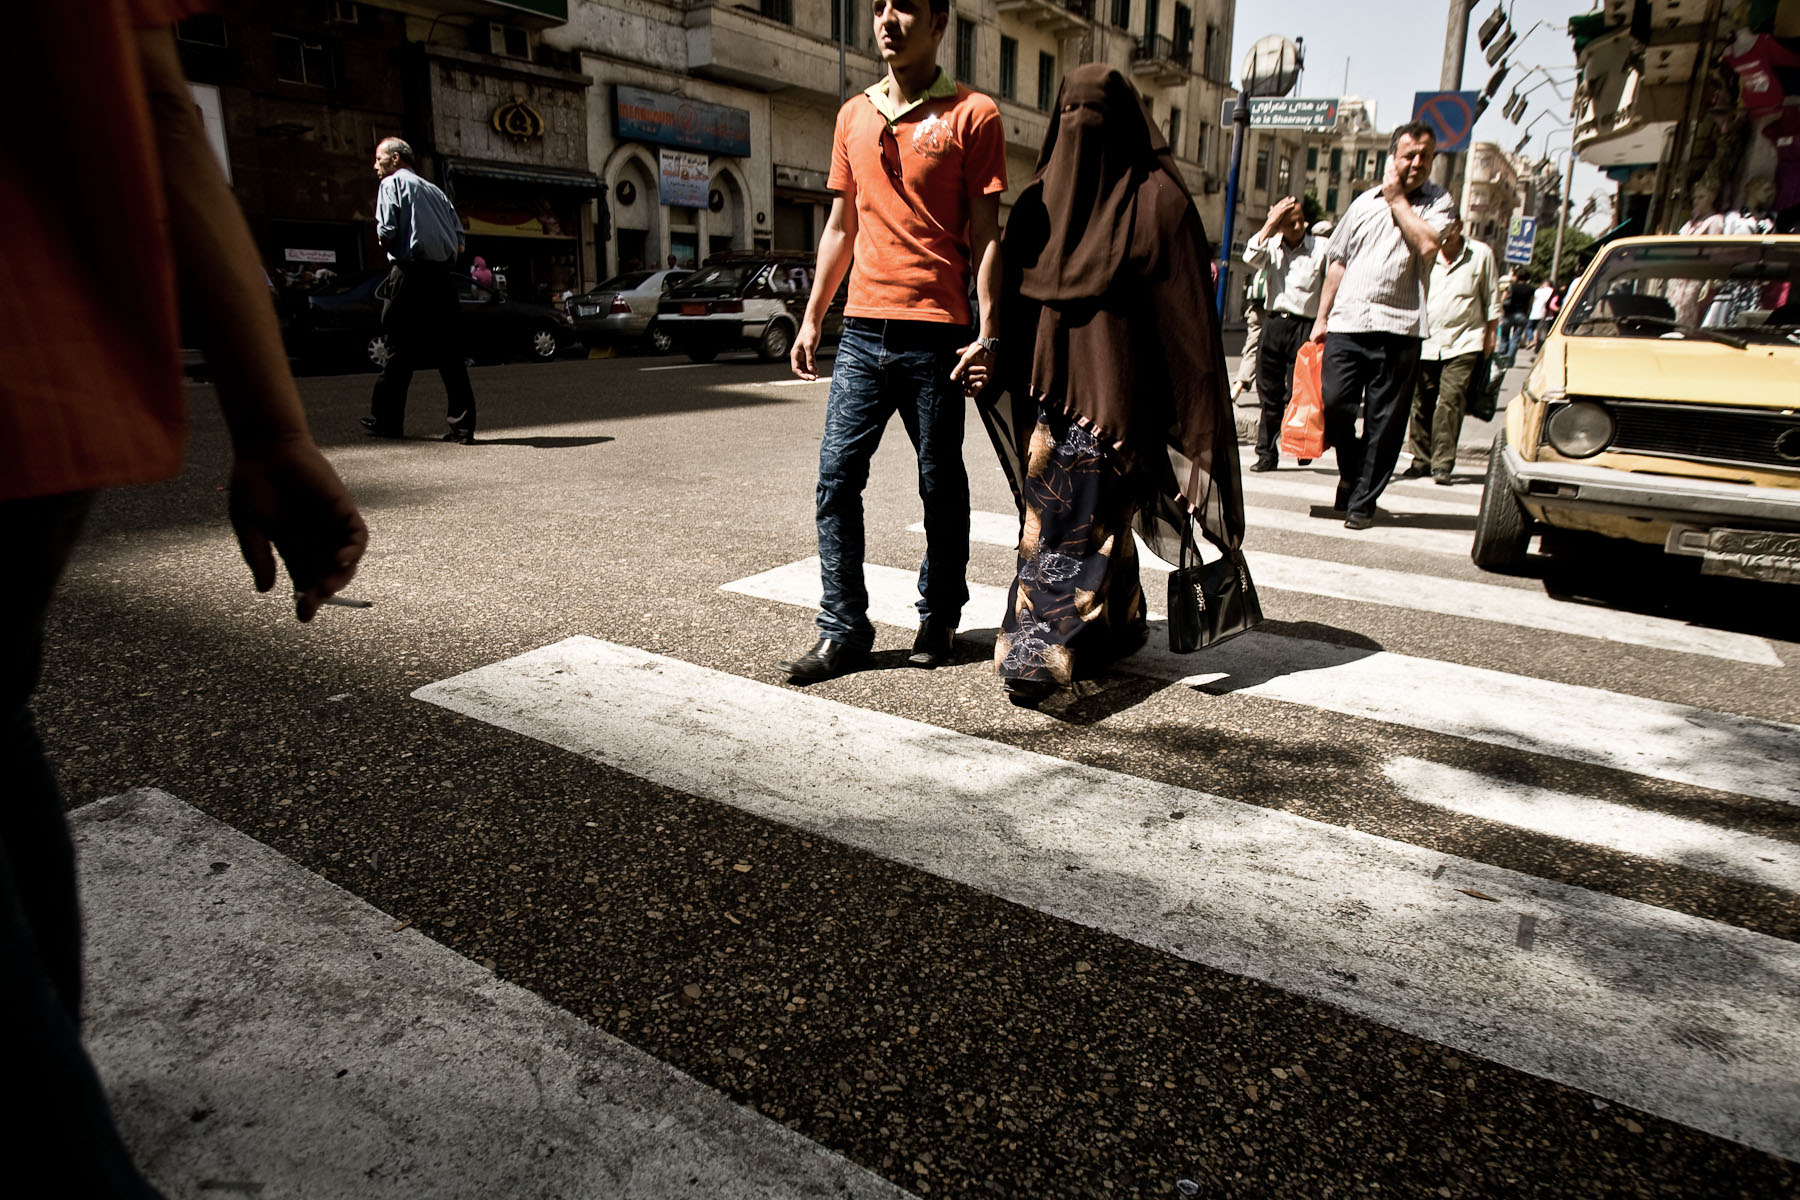 A couple crosses the street in Cairo, Egypt, May 3, 2008.